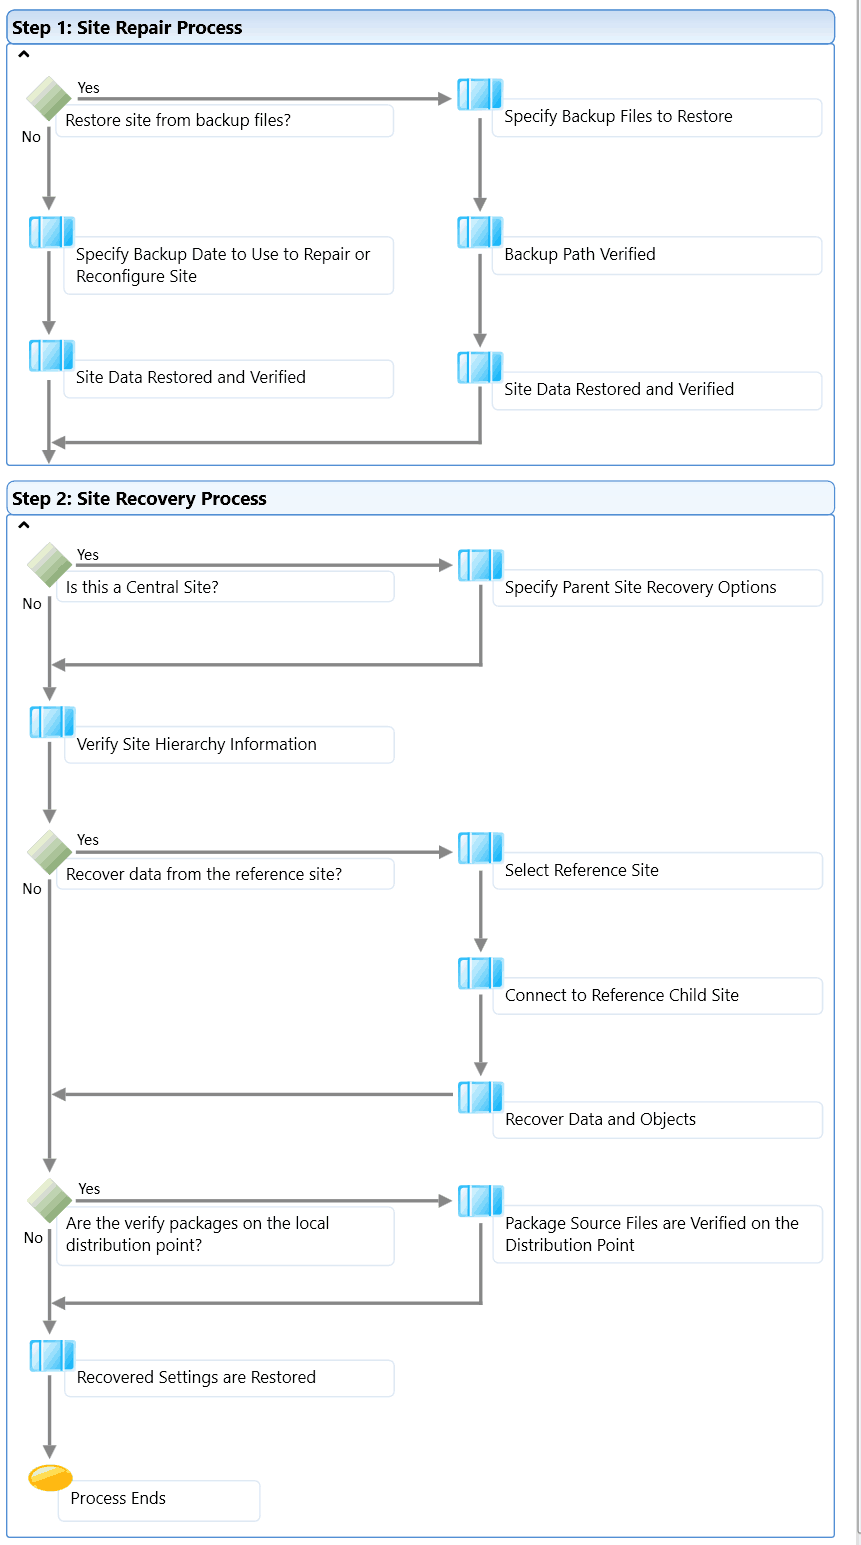 Troubleshoot SCCM Issues with SuperFlow - A Newbie Guide